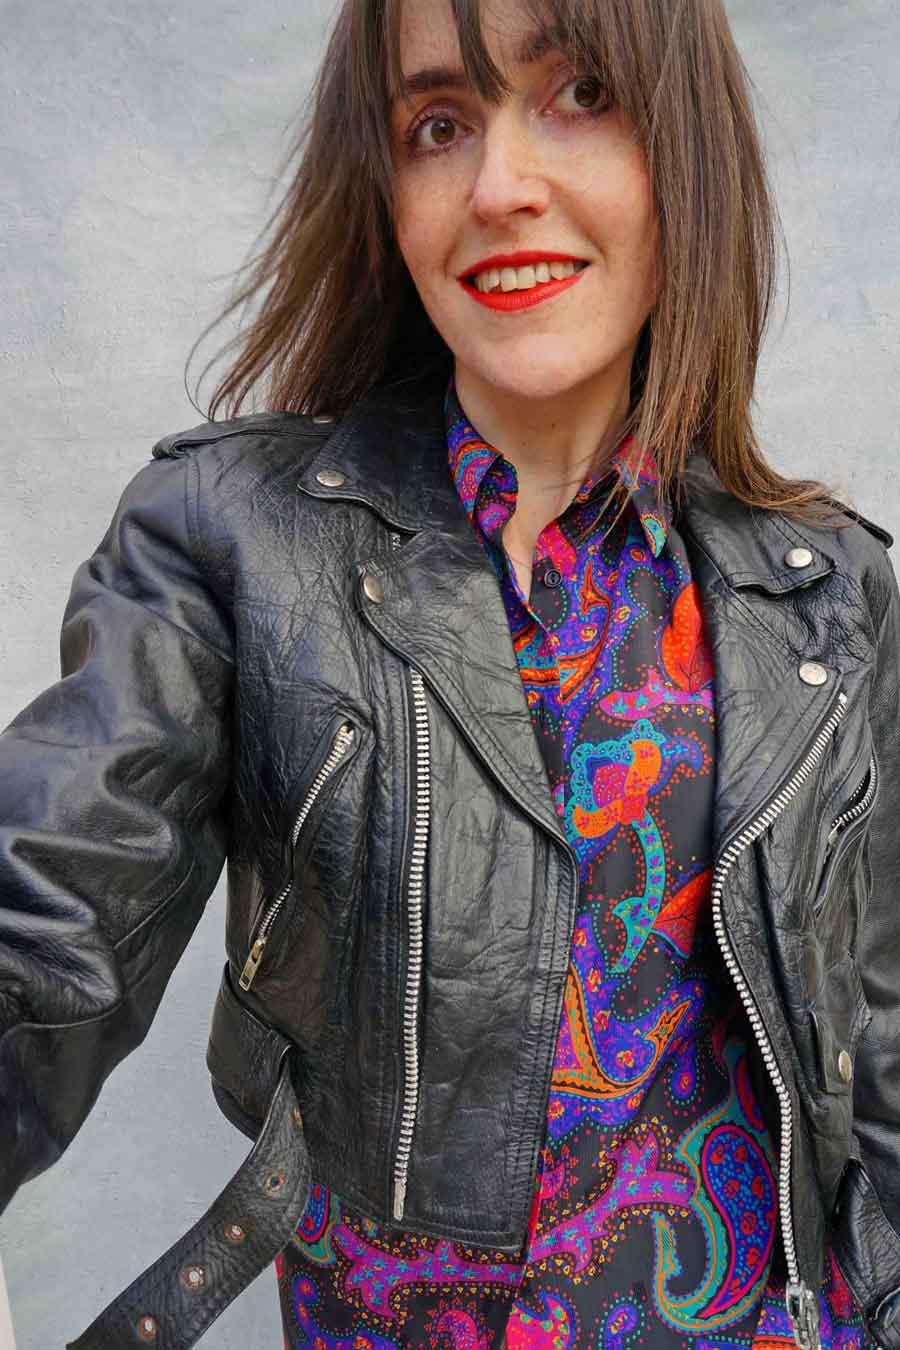 Vintage Black Leather Motorcycle Jacket - womens black leather jacket - ada's attic vintage